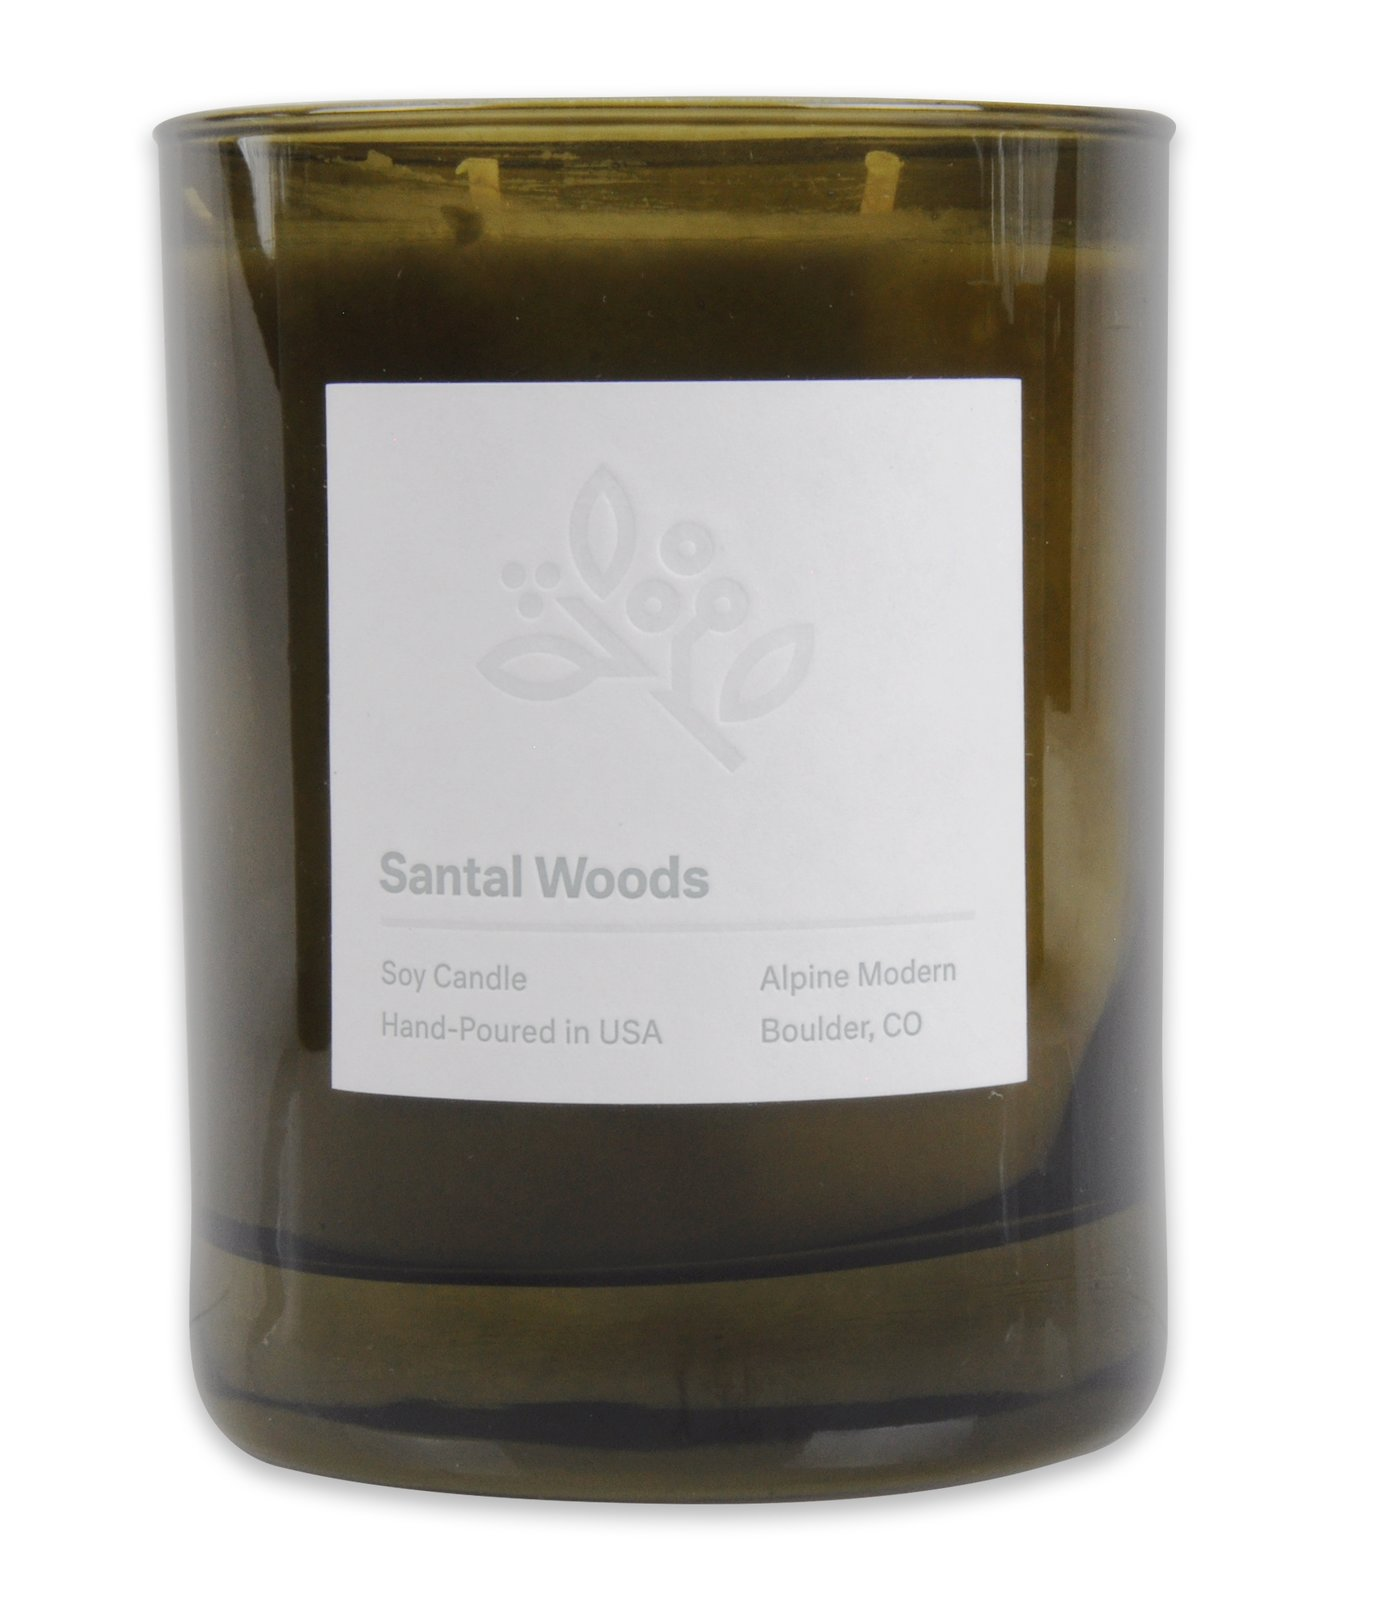 Santal Woods Candle for $30 from Alpine Modern  Photo 5 of 12 in An Expert's Guide to a Bavarian-Coloradan Holiday